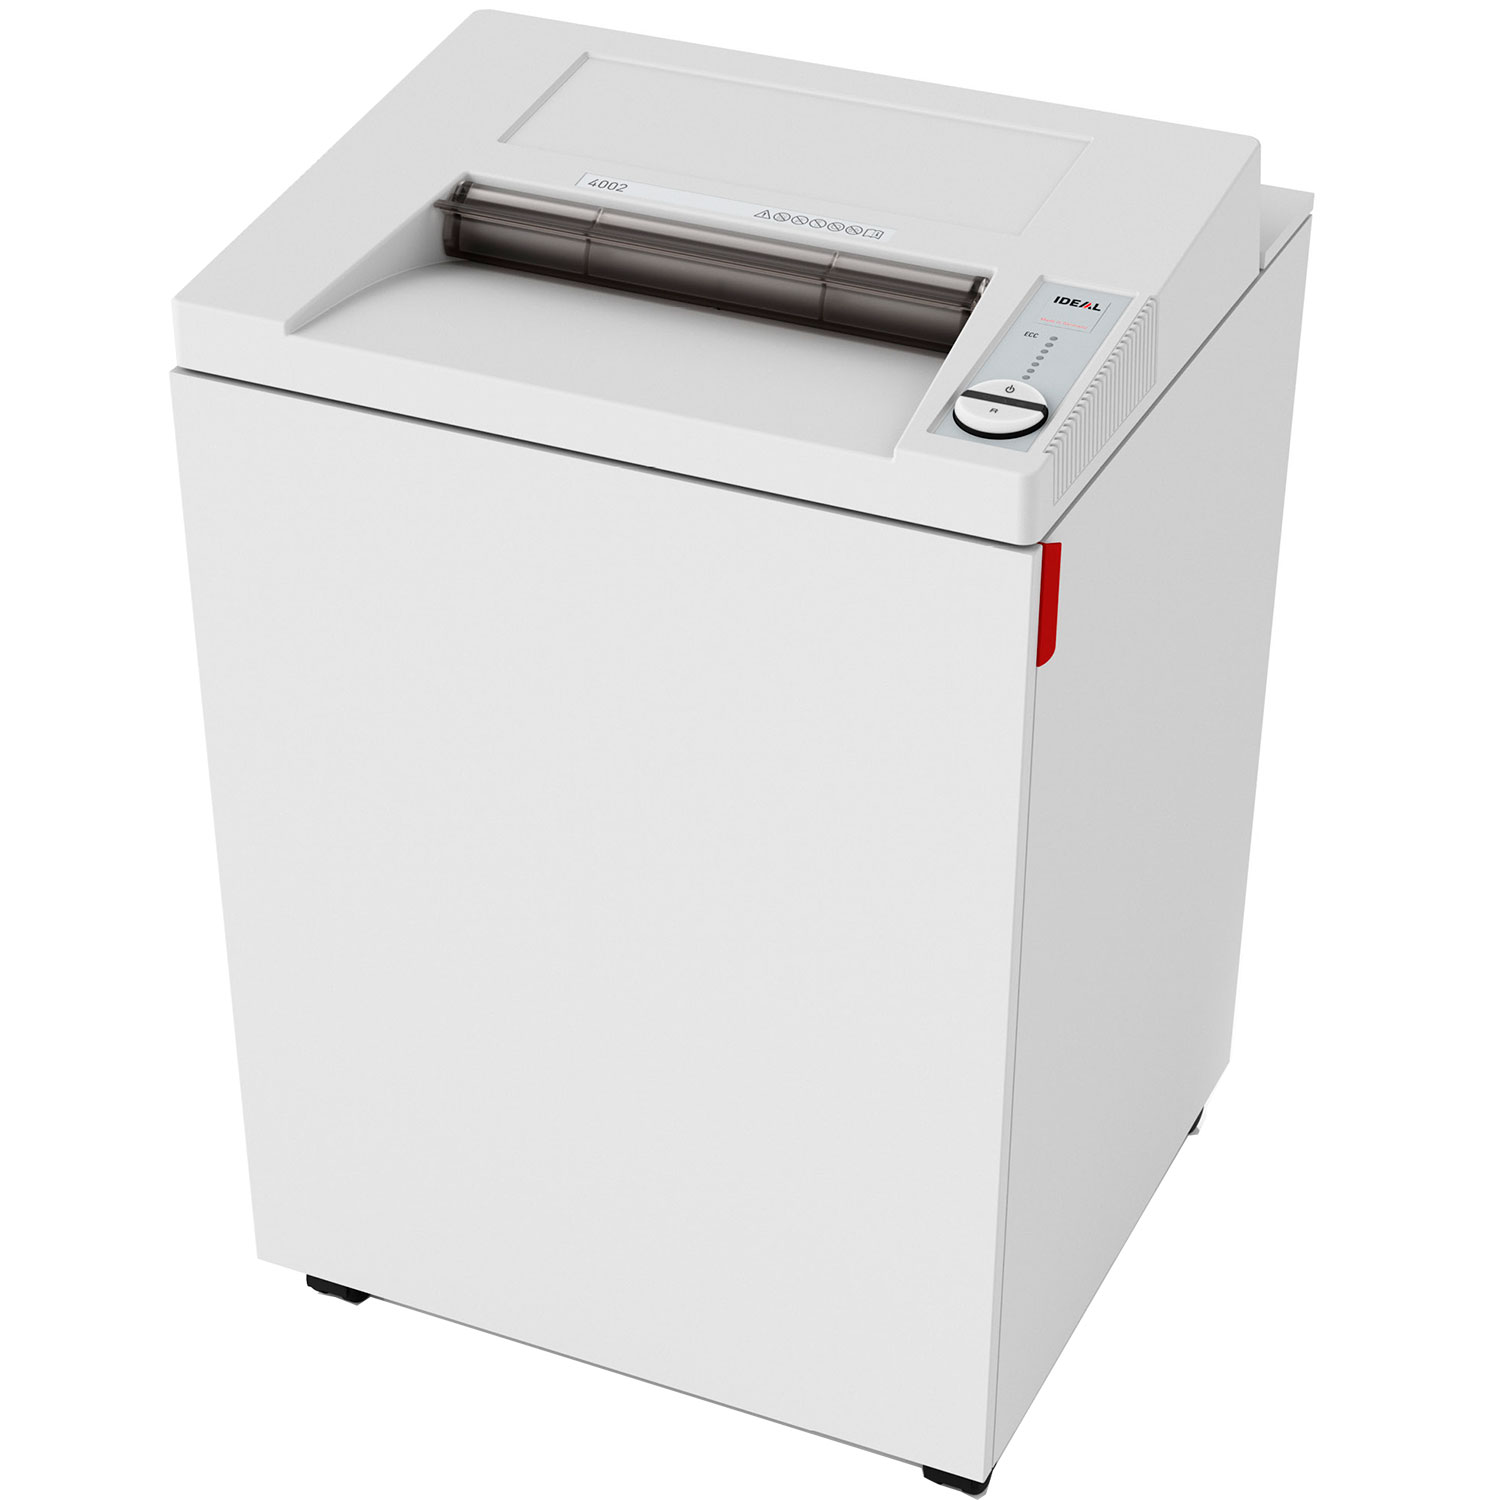 IDEAL 4002 Cross-Cut 2 x 15mm Paper Shredder